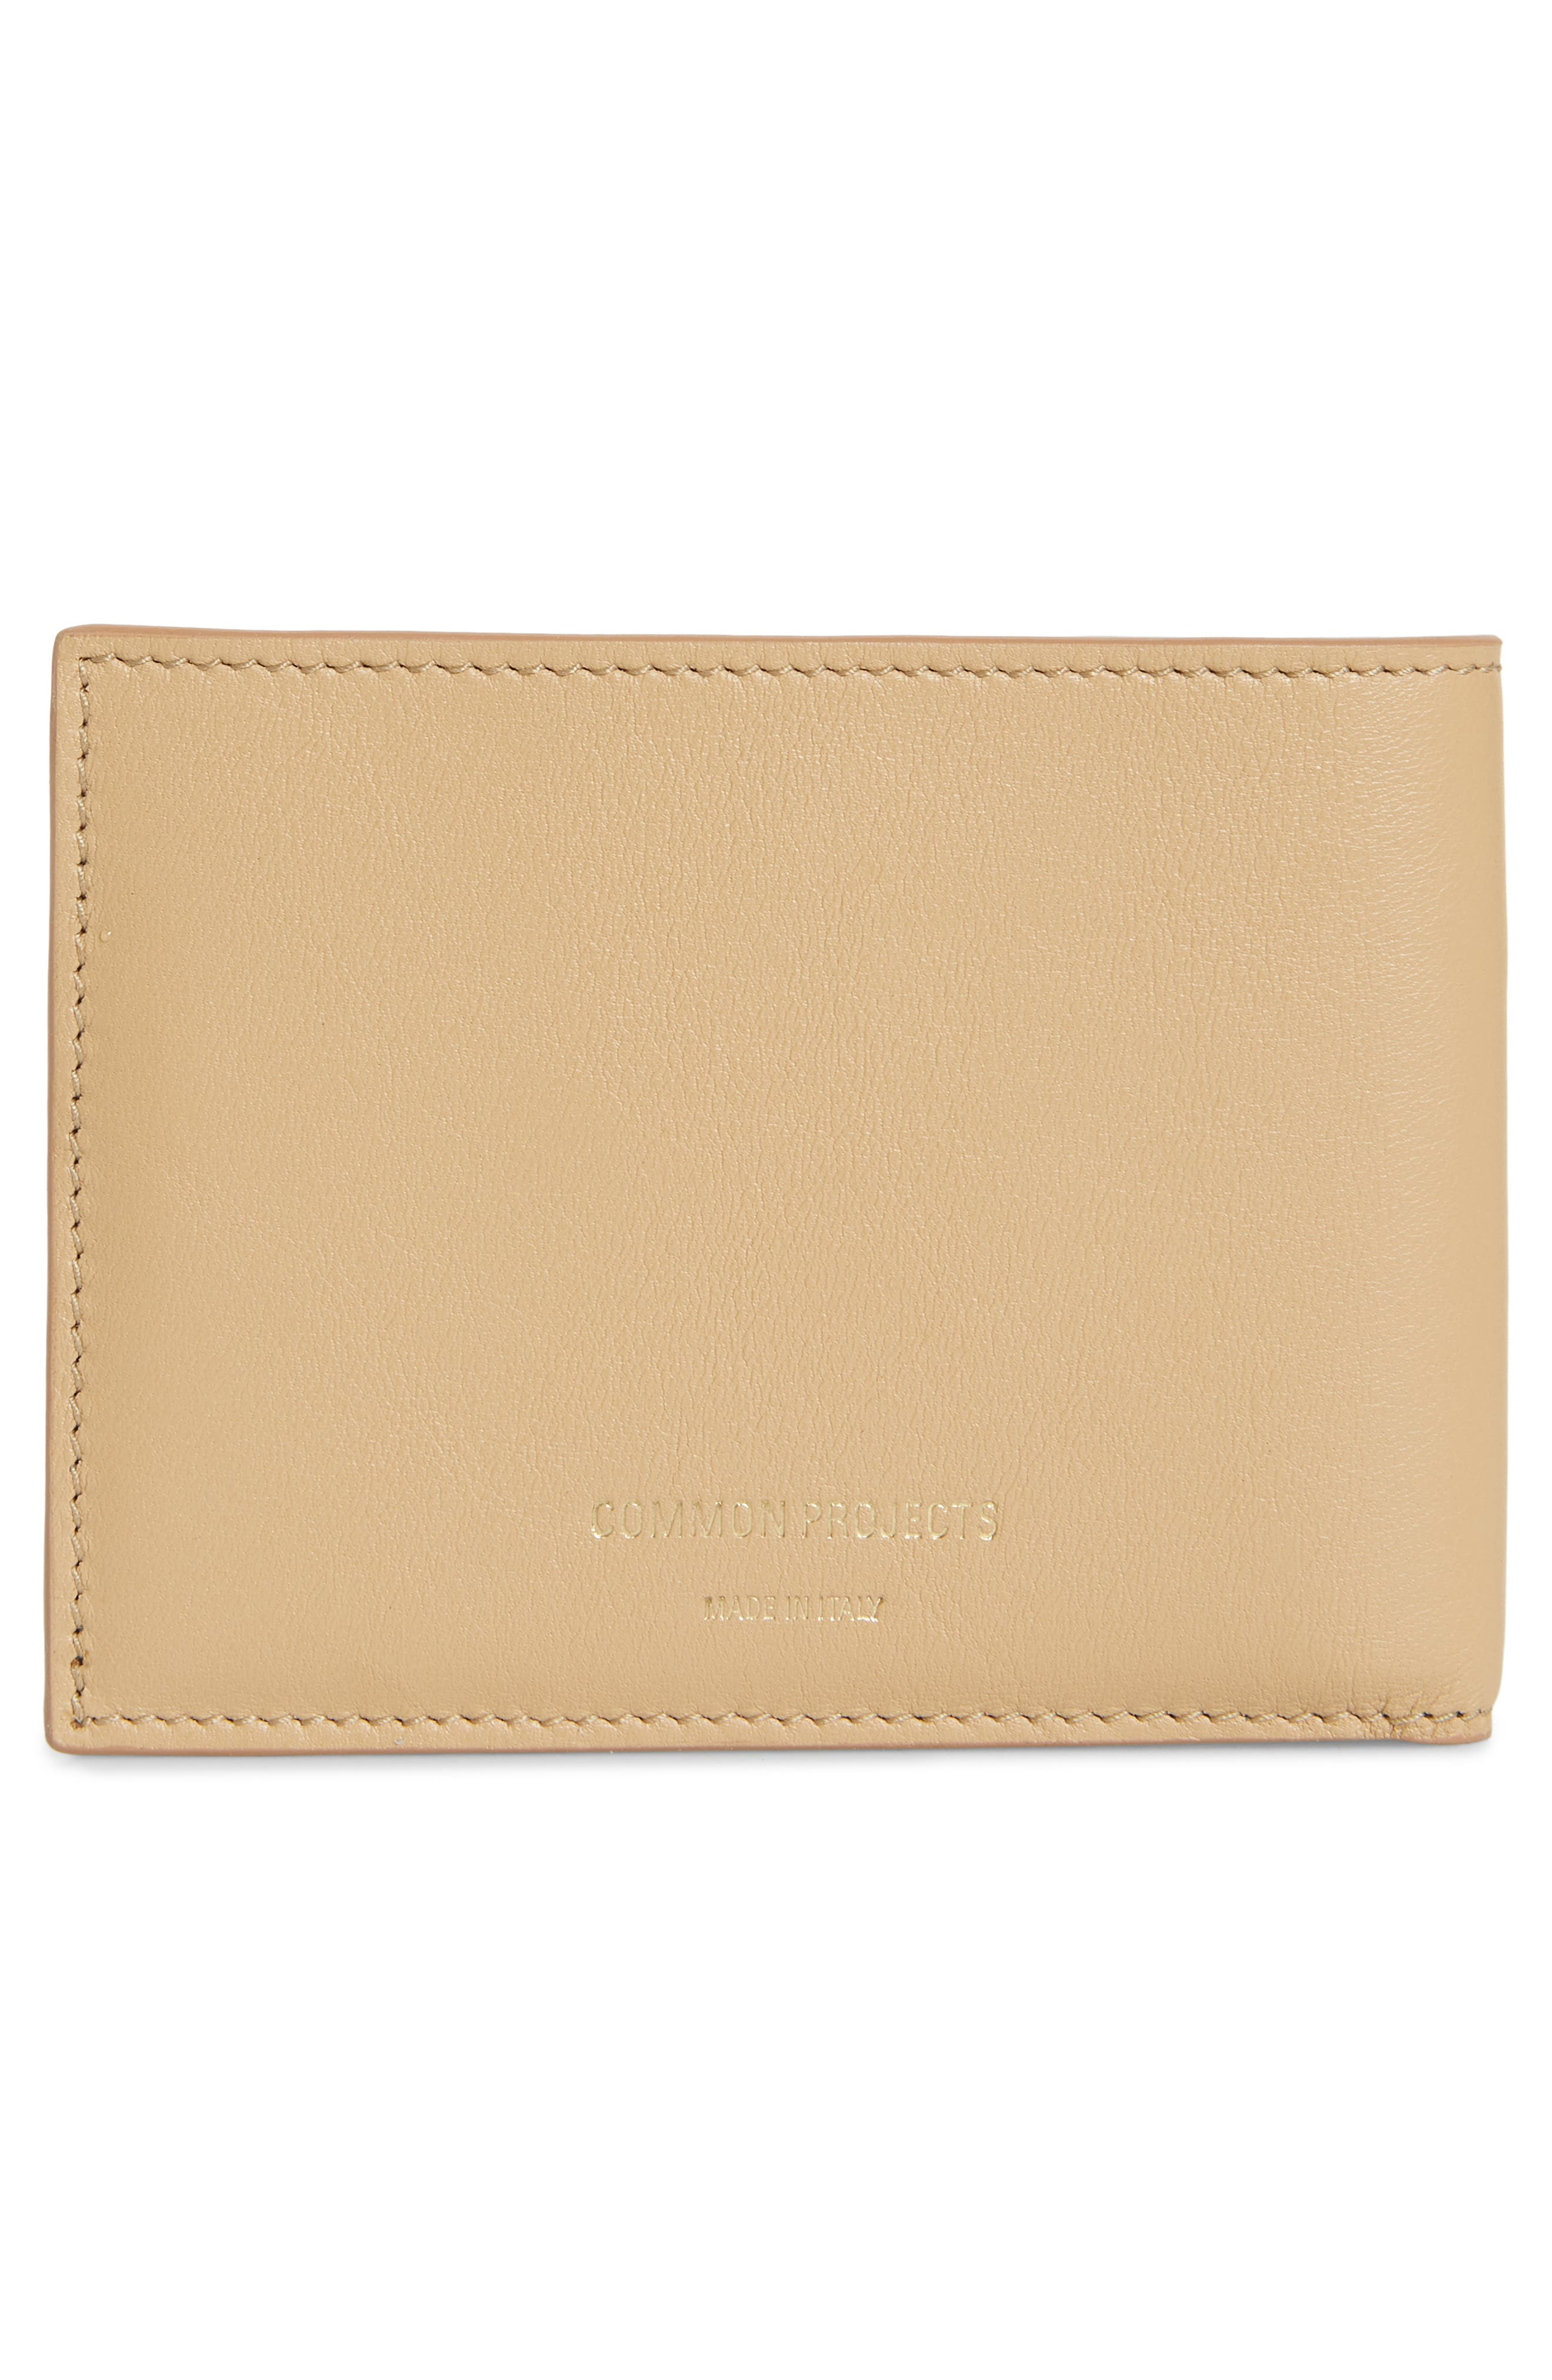 COMMON PROJECTS, Bifold Nappa Leather Wallet, Alternate thumbnail 3, color, TAN